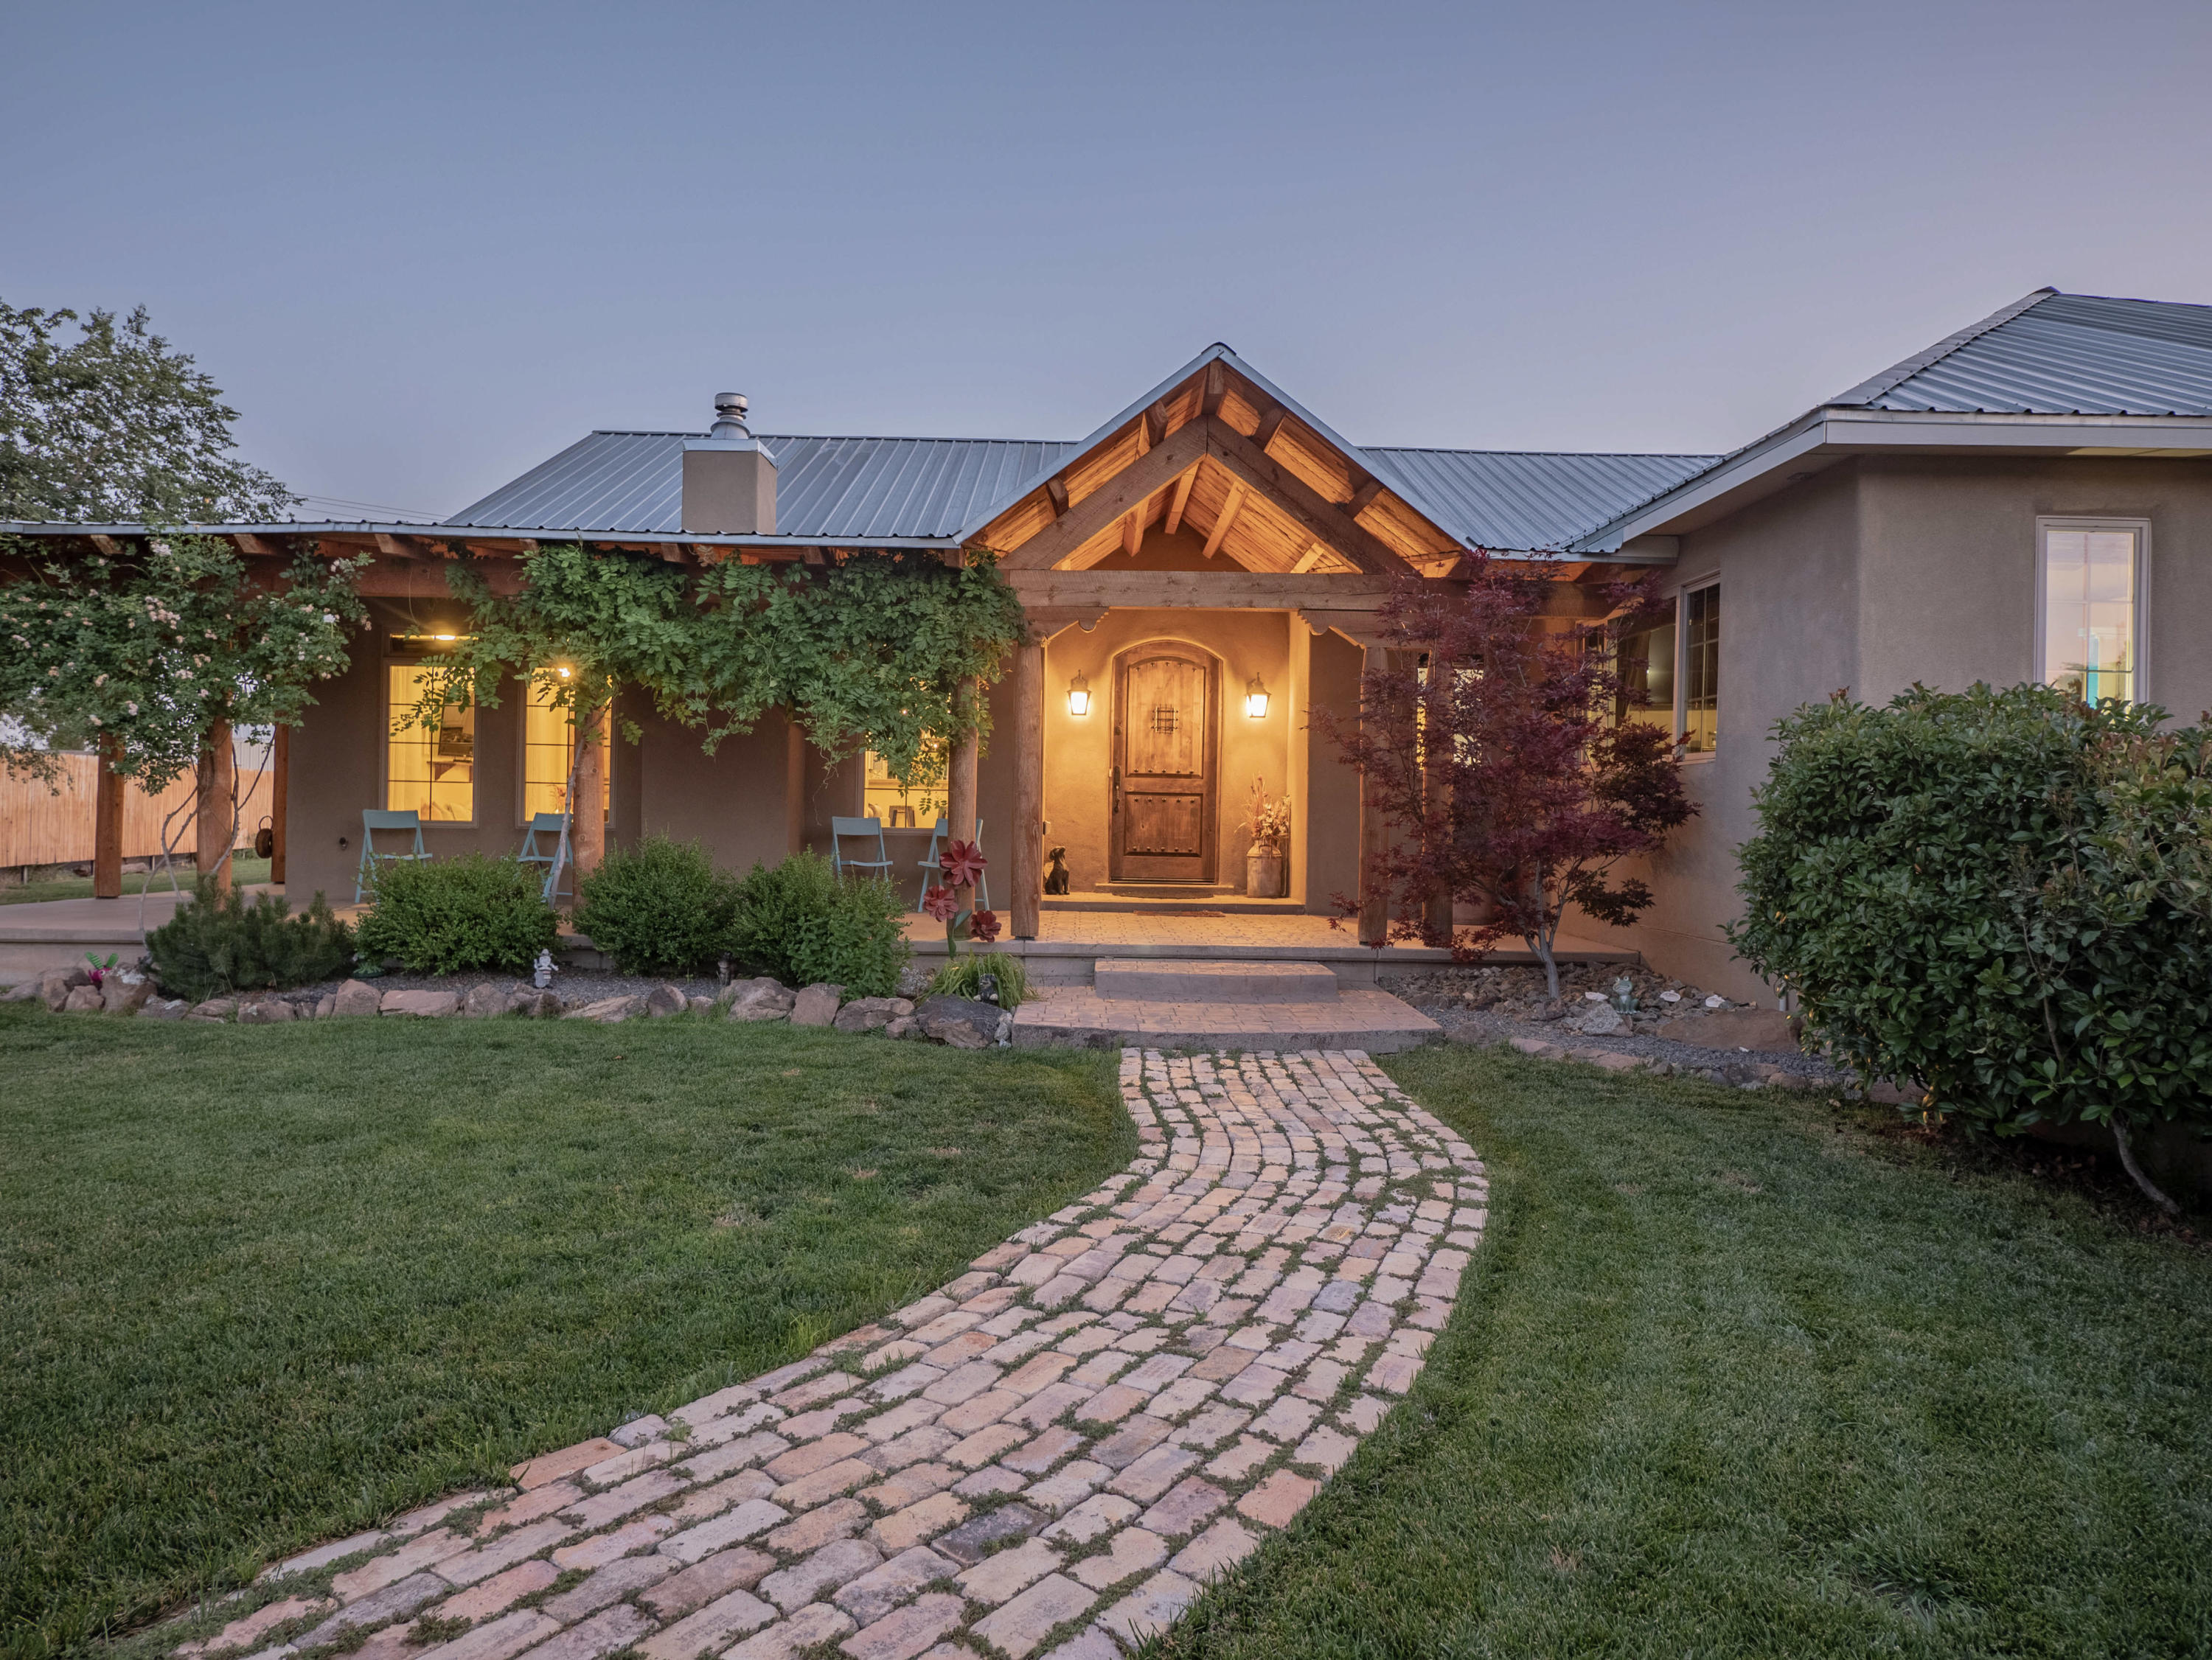 This stunning and meticulous North Valley custom-built home is a must see! The gorgeous fenced in courtyard leads up to a covered wrap around porch & sits above a well maintained lawn. The unique features of this newer built home are centered around an open floor plan that's polished with tons of natural light. The stylish kitchen offers a walk-in pantry & an additional sink anchored by a huge breakfast bar overlooking spacious countertops.The home provides 4 bedrooms & a separate office. An entertainers backyard showcases a large patio with additional shade & a side yard big enough for an RV & other toys! This home is centrally located in the city & near Open Space & bike trails.